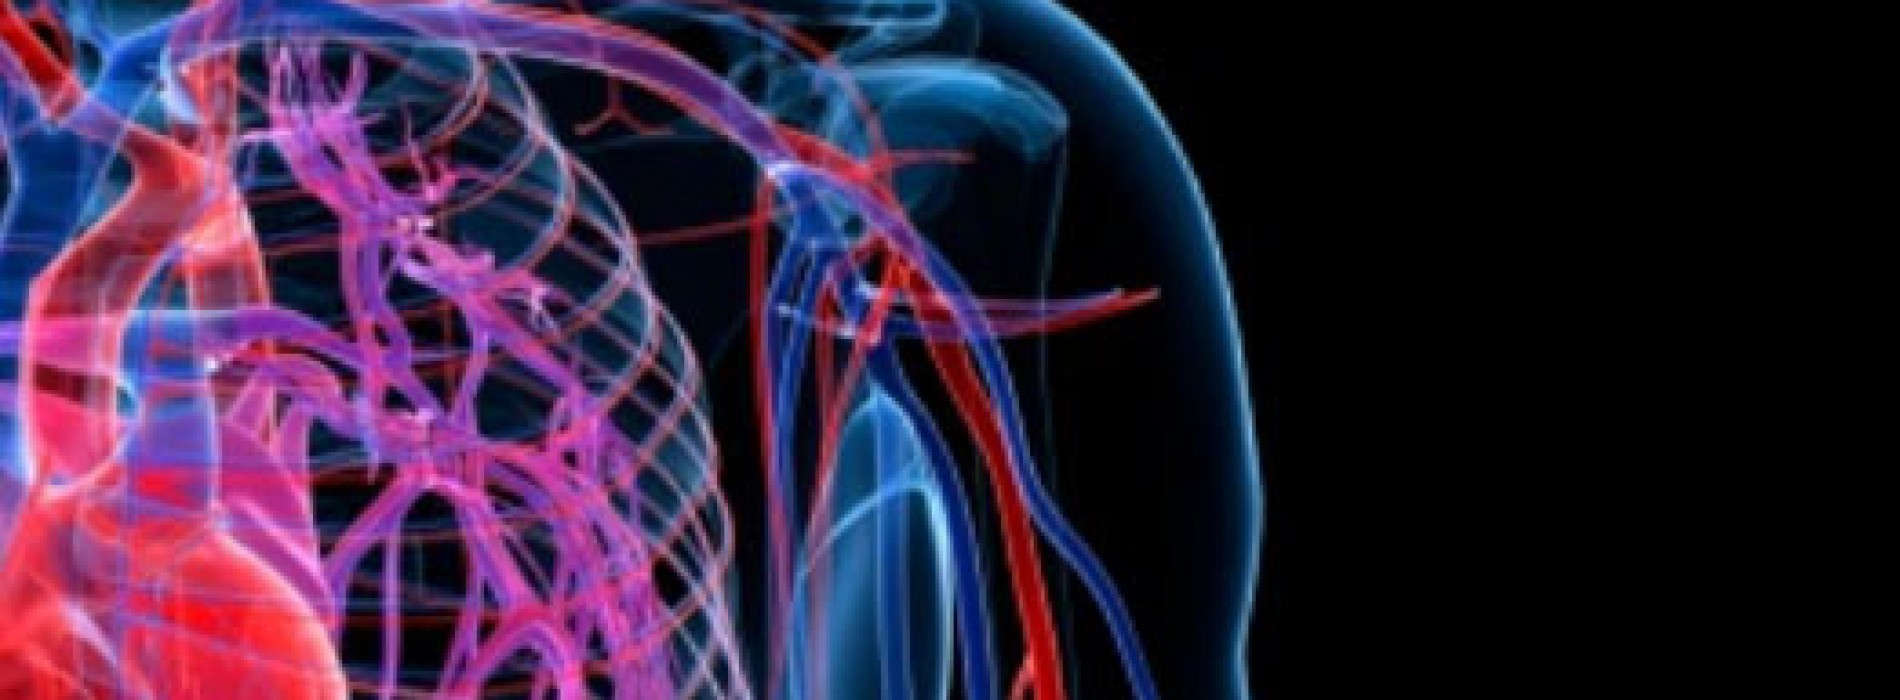 Facts, functions and diseases of human circulatory system